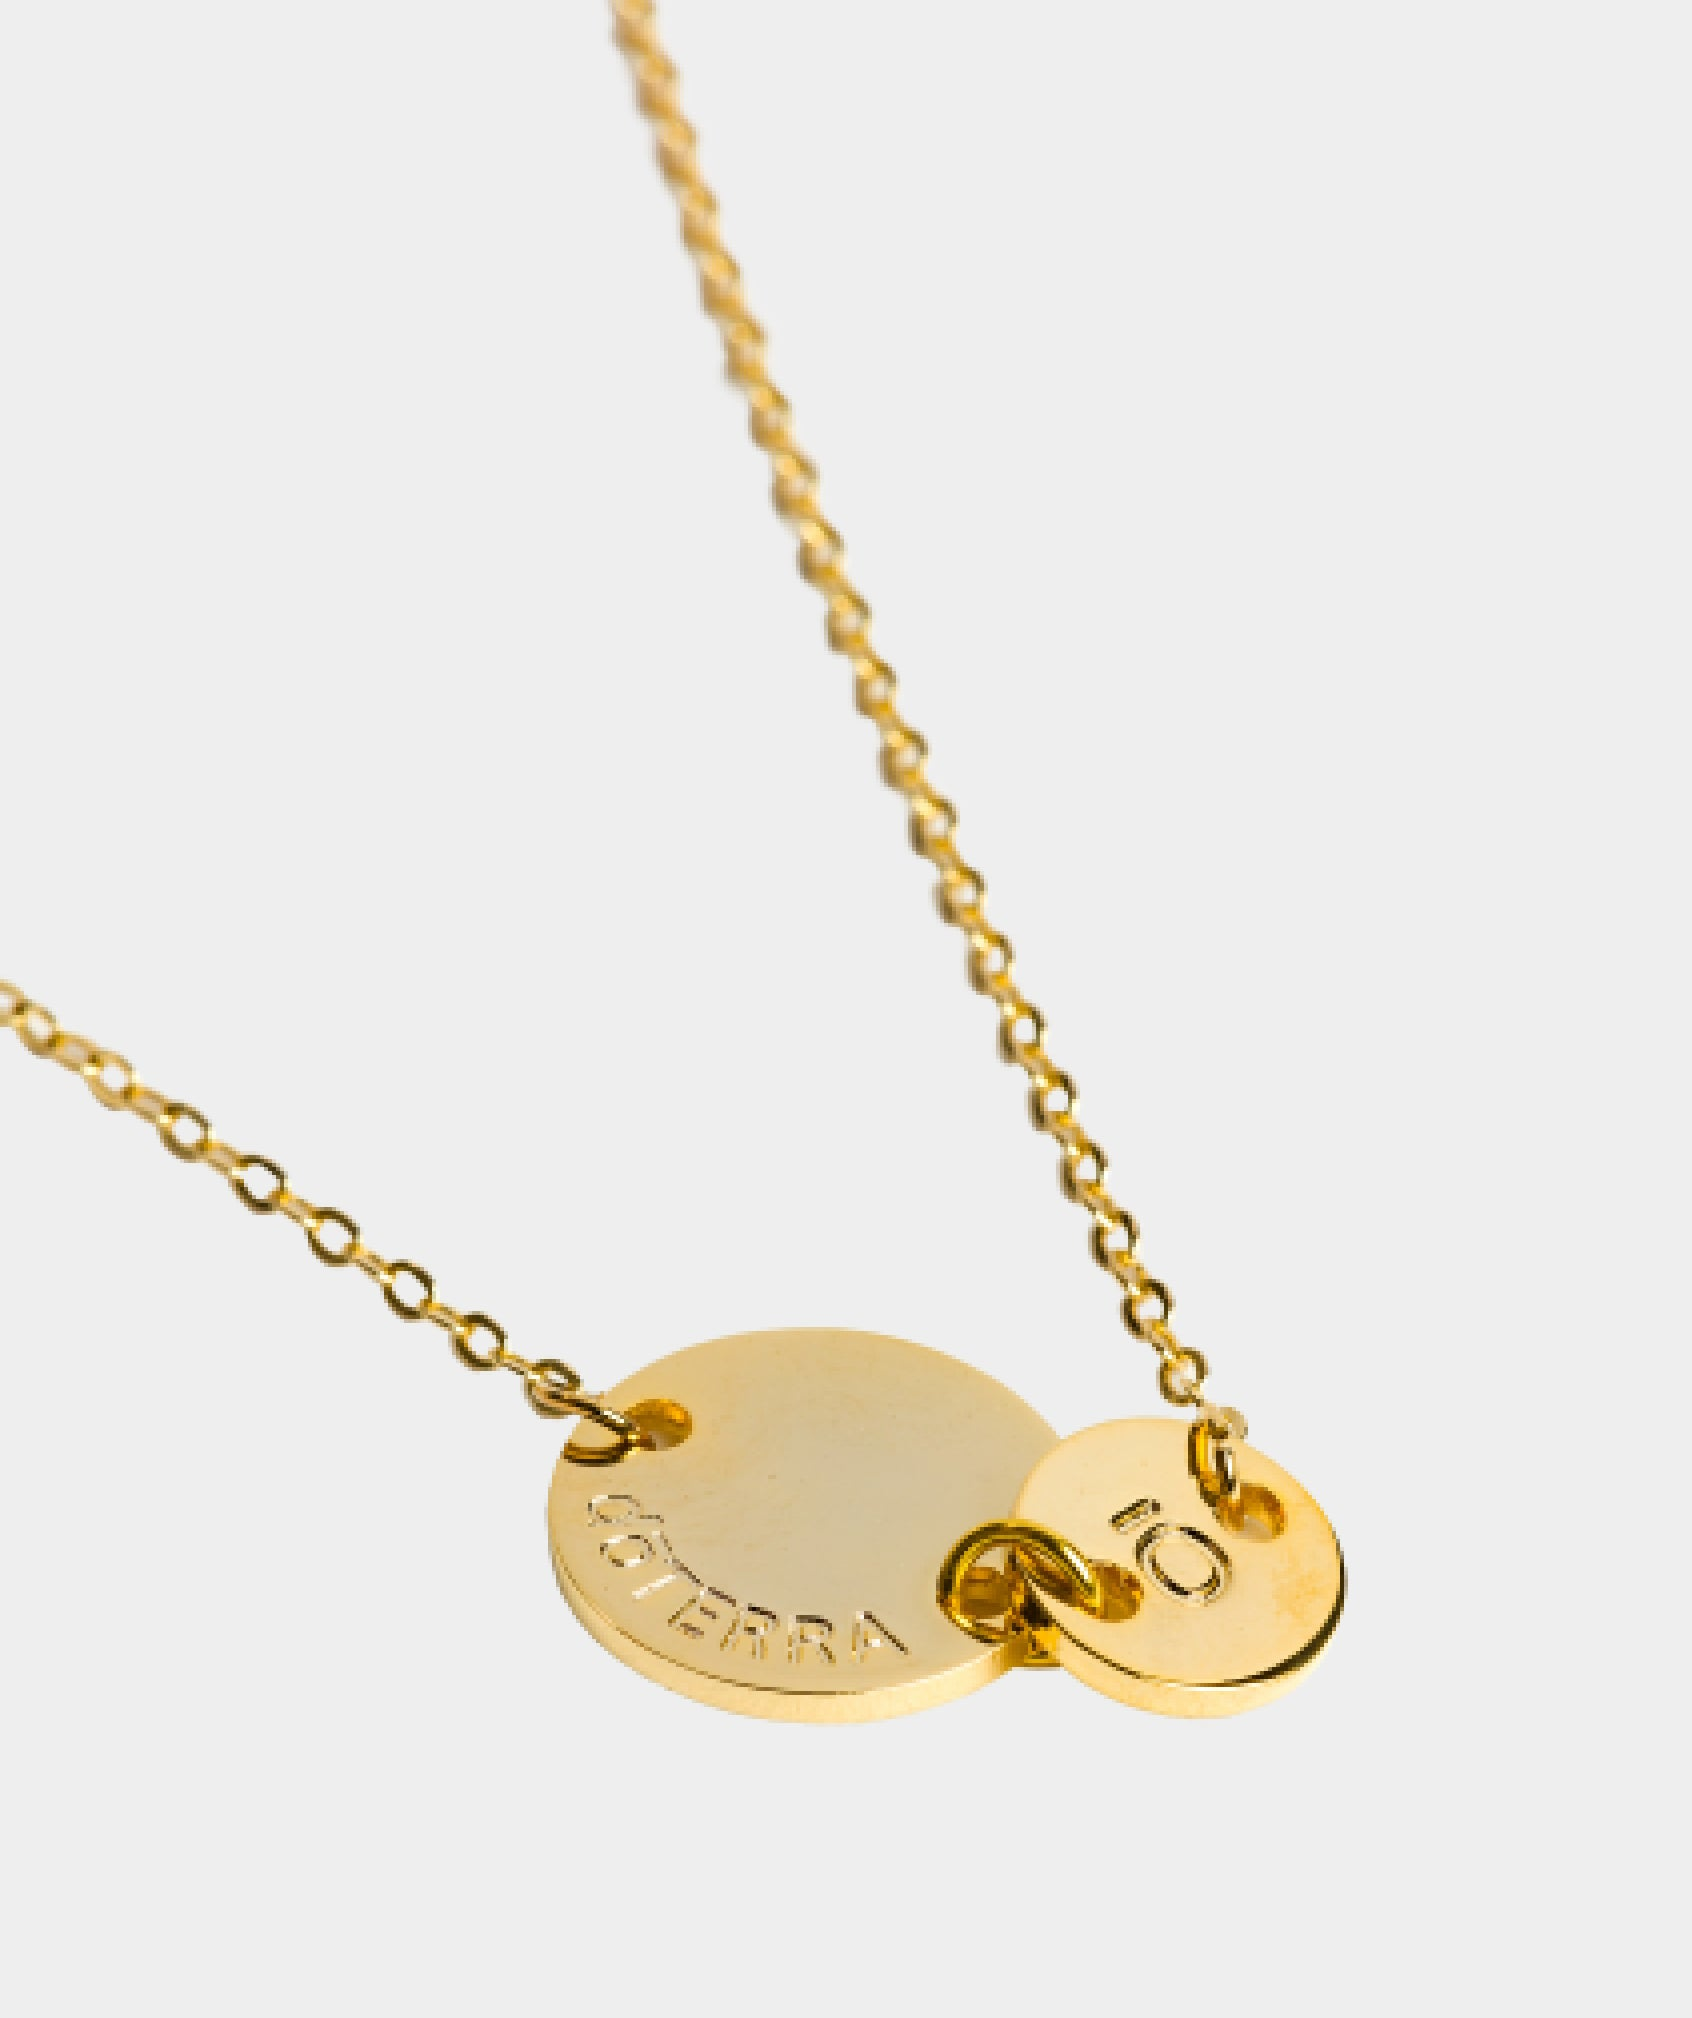 Momento Necklace